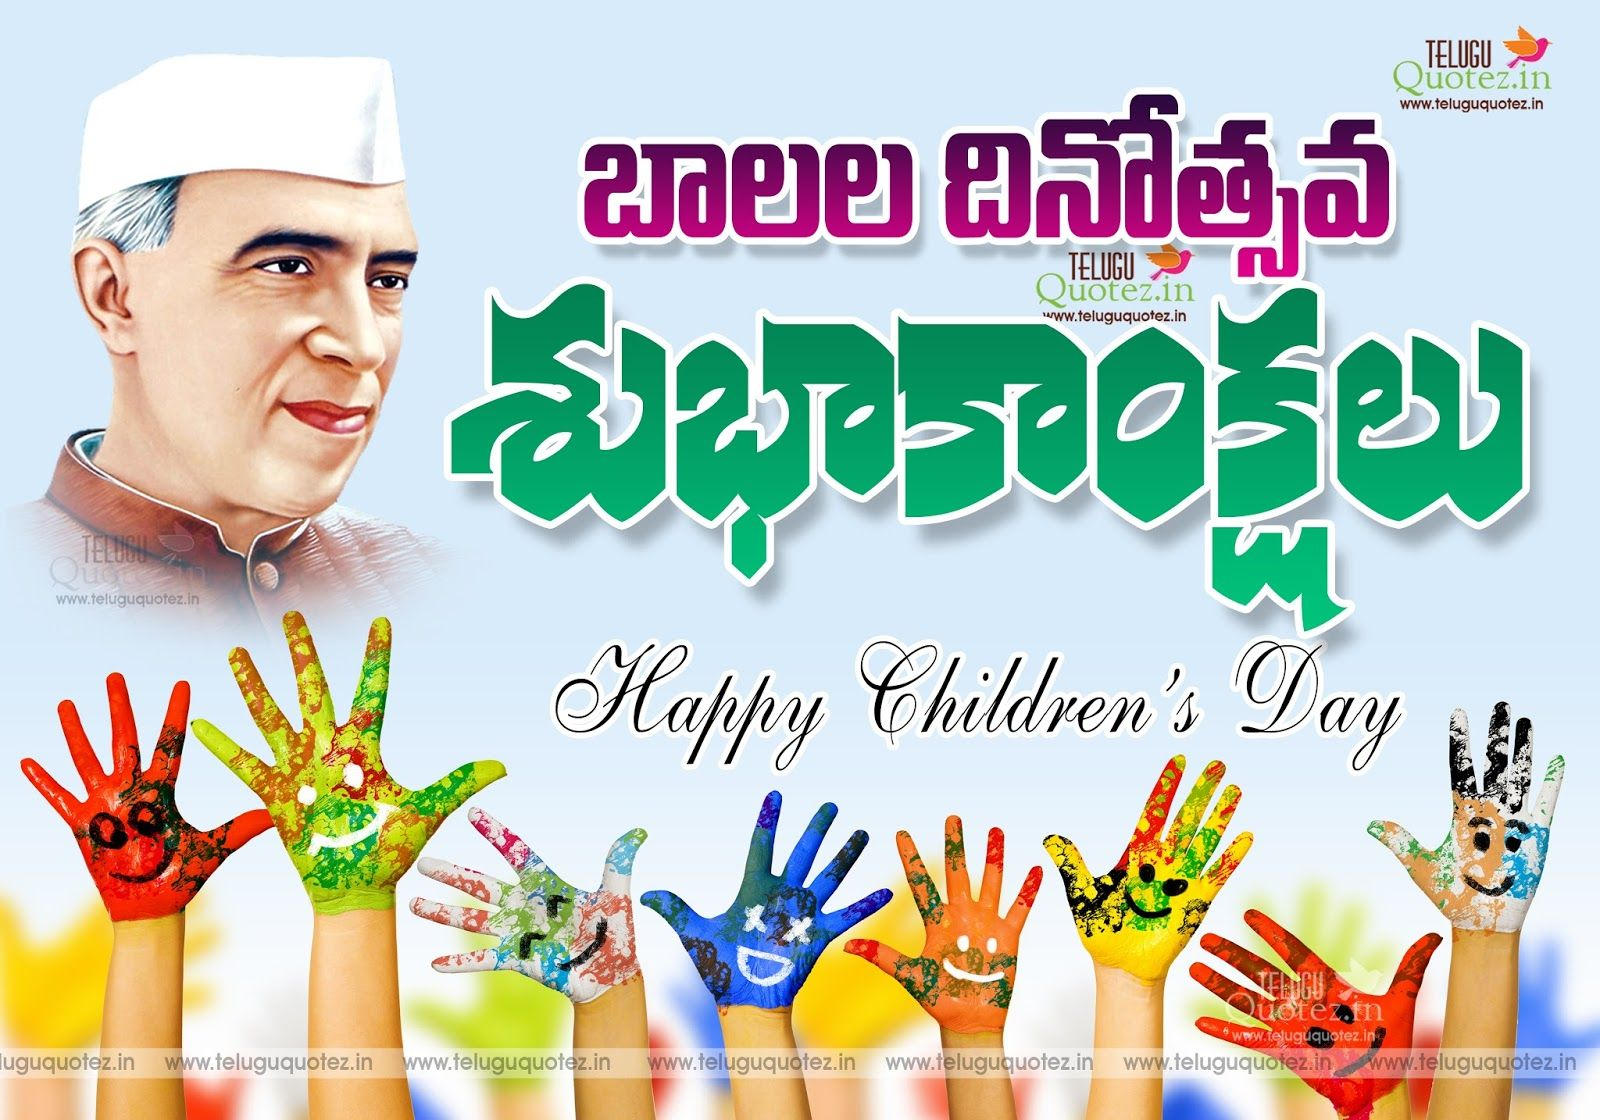 Happy Childrens Day Telugu Quotes And Sayings Happy Childrens Day